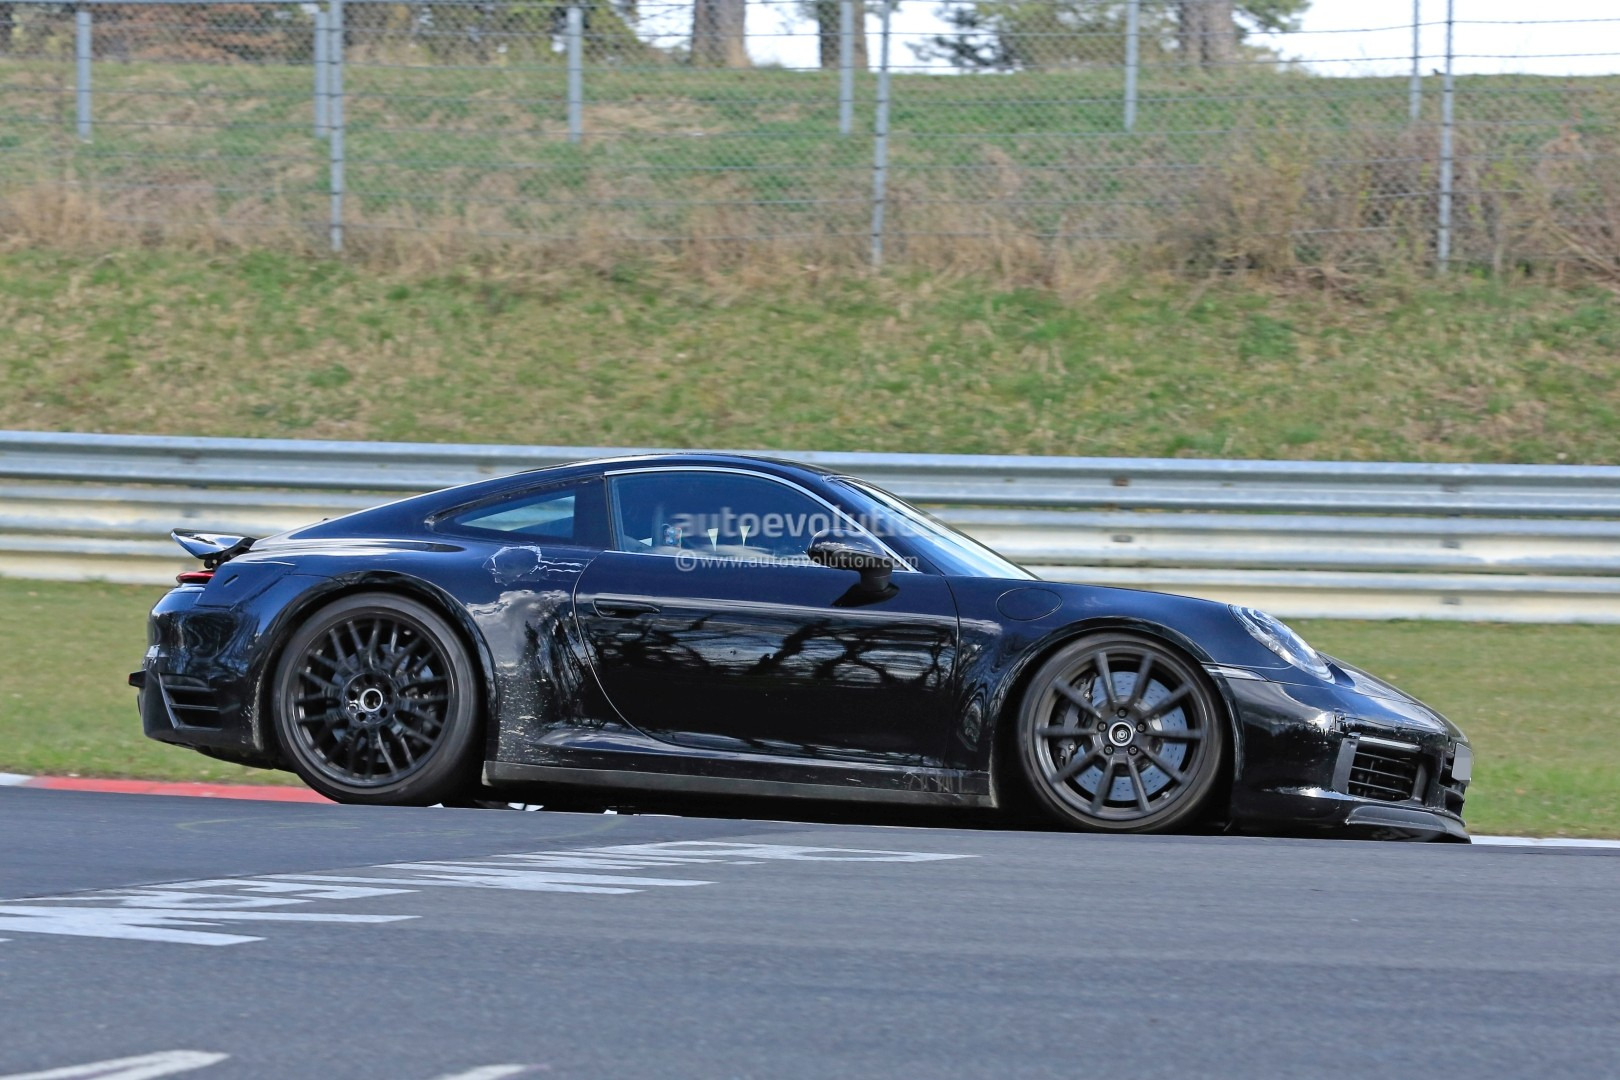 new 2019 porsche 911 makes nurburgring debut prototype could be a hybrid autoevolution. Black Bedroom Furniture Sets. Home Design Ideas